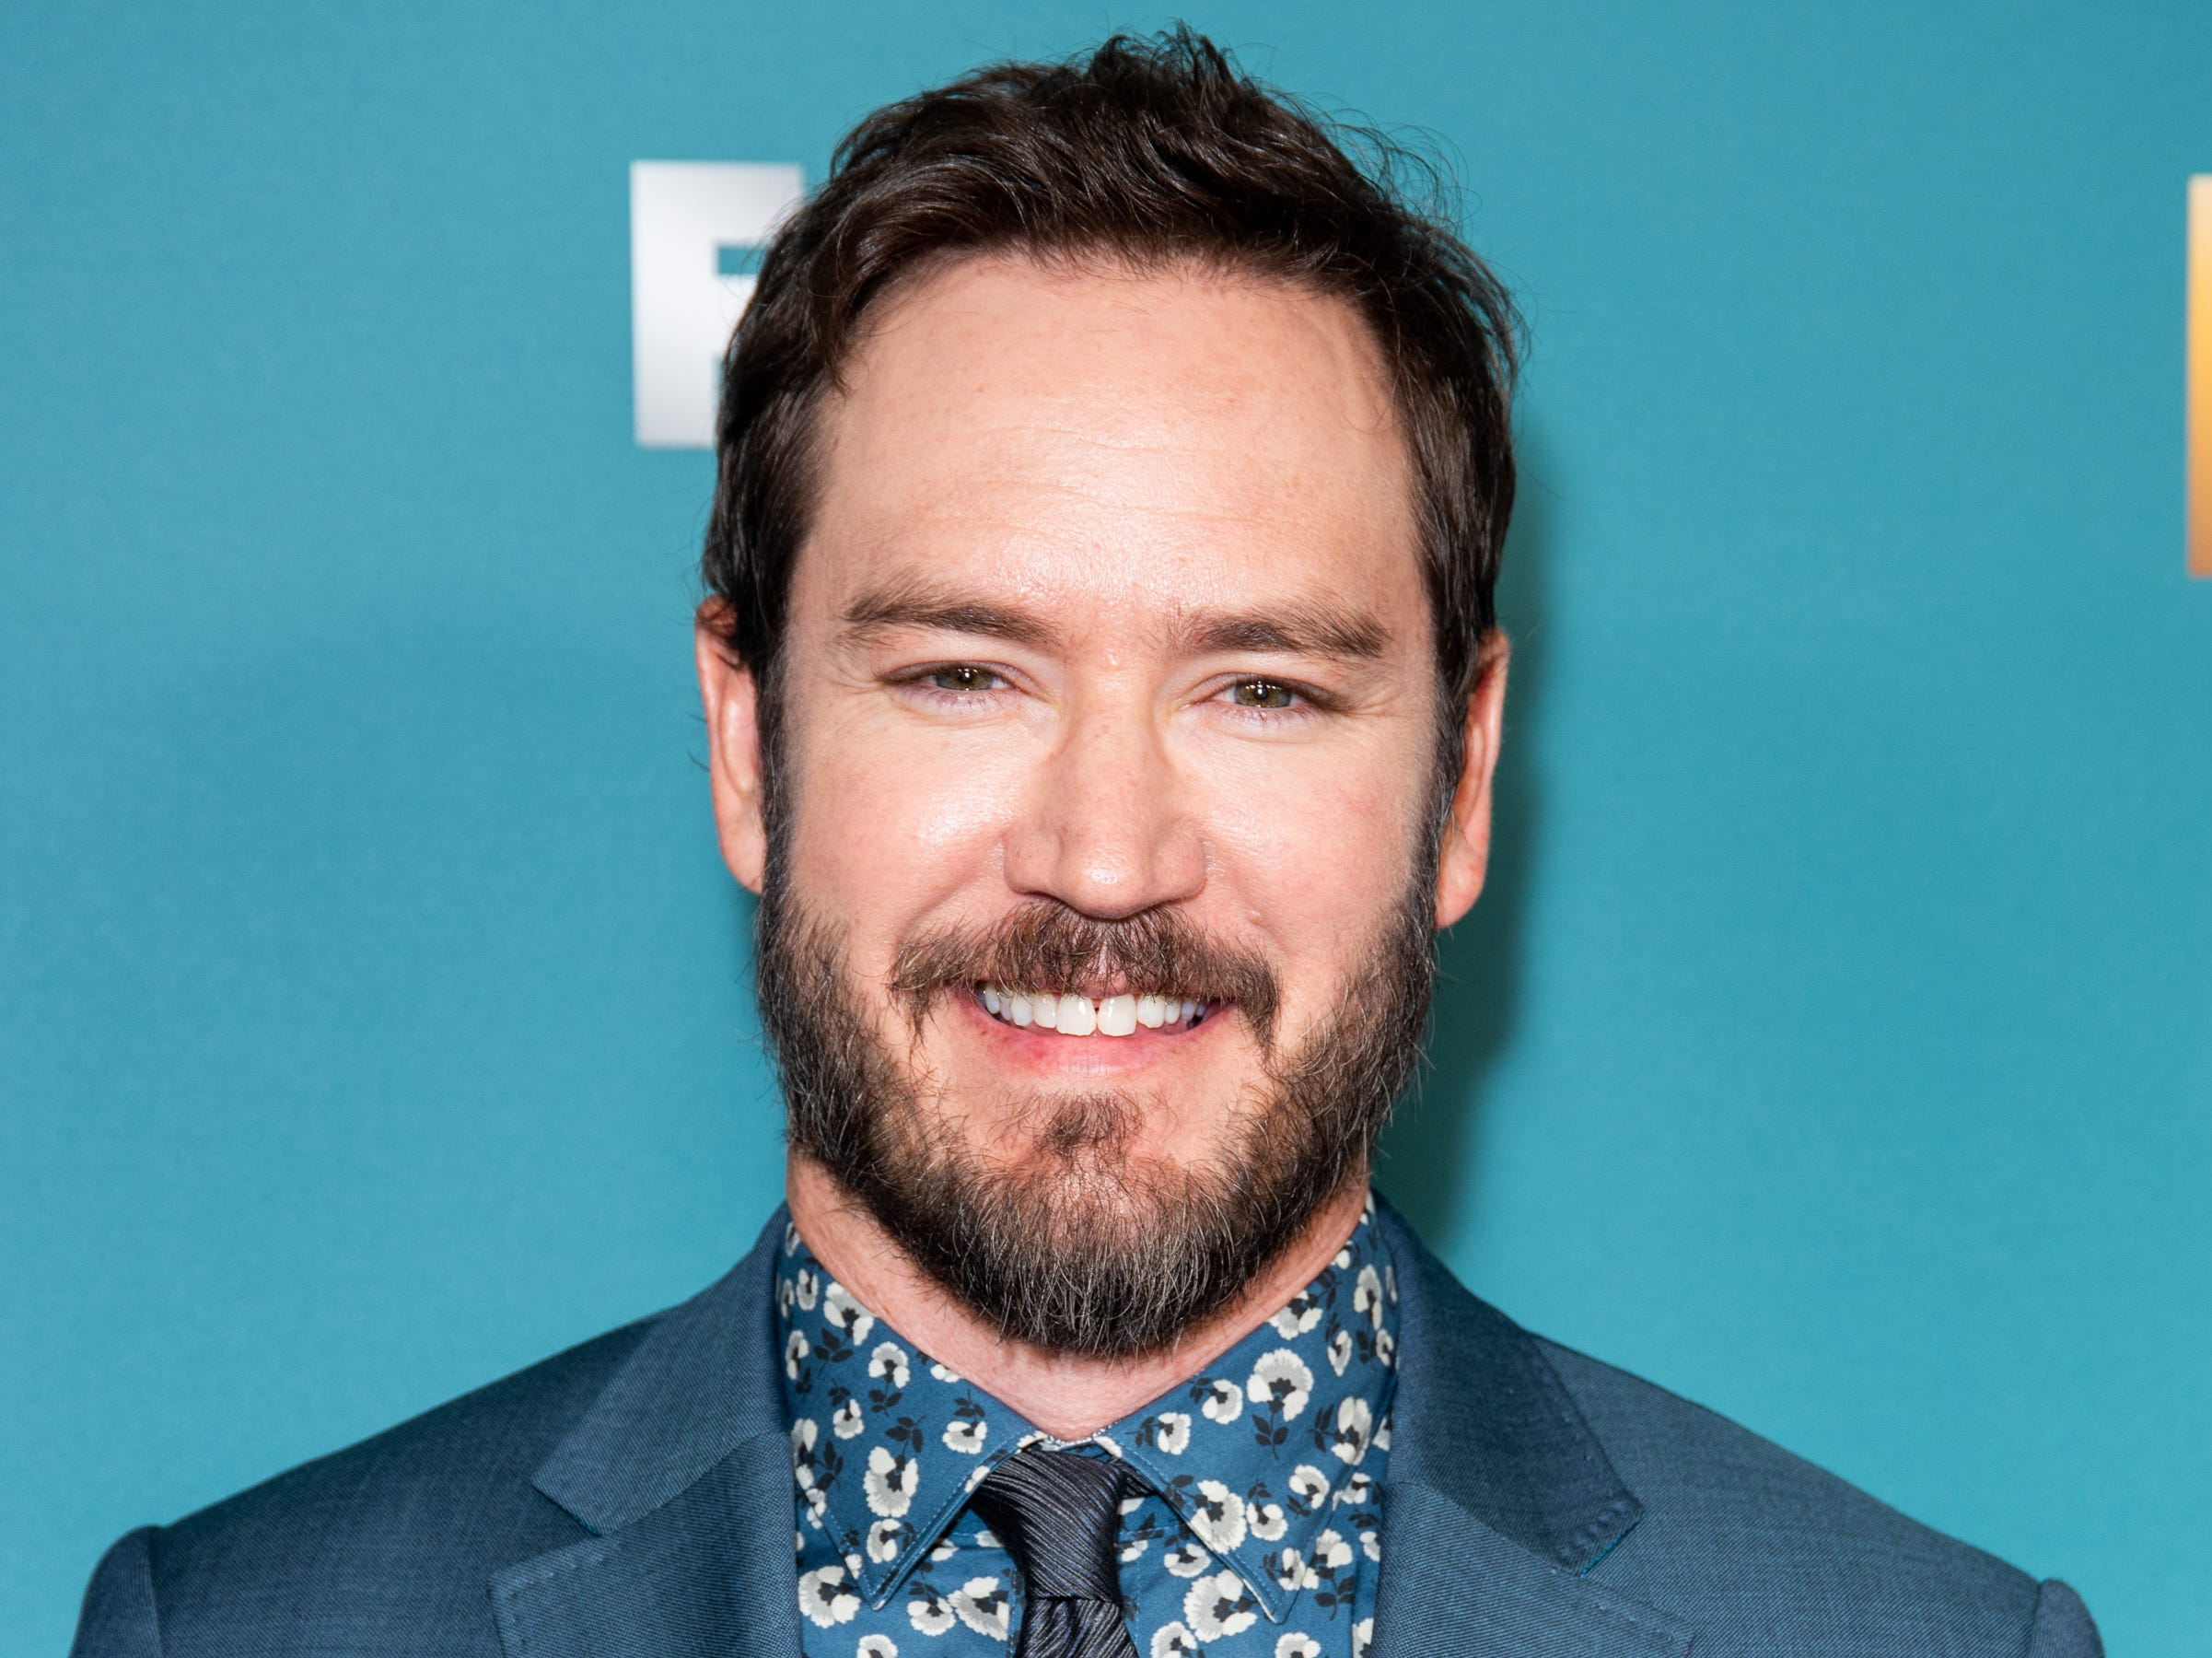 "SANTA MONICA, CALIFORNIA - JANUARY 10: Mark-Paul Gosselaar attends FOX's ""The Passage"" Premiere Party at The Broad Stage on January 10, 2019 in Santa Monica, California. (Photo by Presley Ann/Getty Images) ORG XMIT: 775277734 ORIG FILE ID: 1092542738"